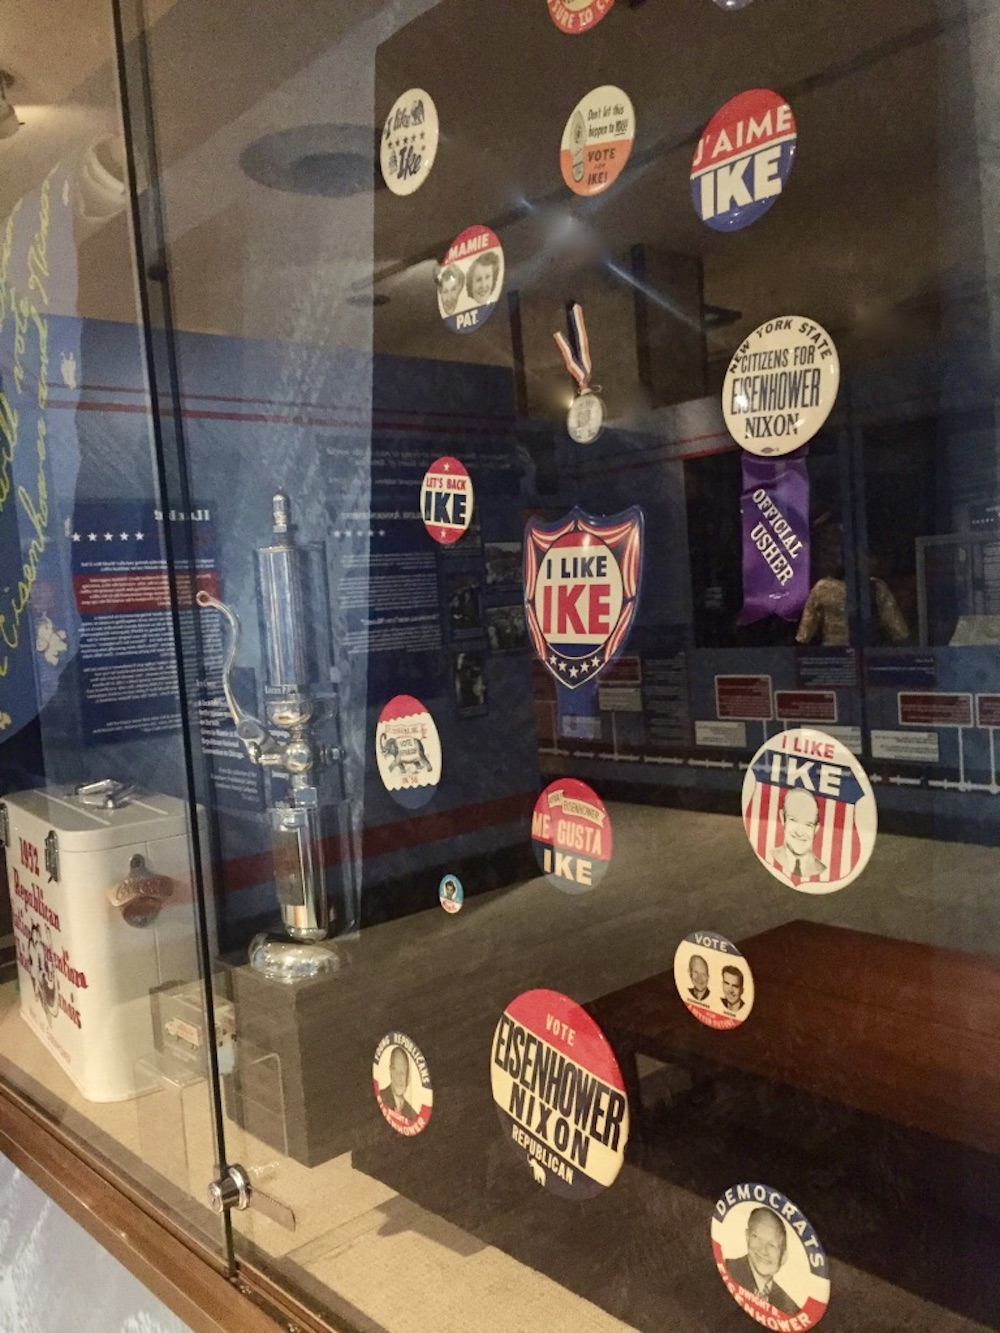 I like Ike buttons on display at the Eisenhower Presidential Library and Museum in Abilene, Kansas